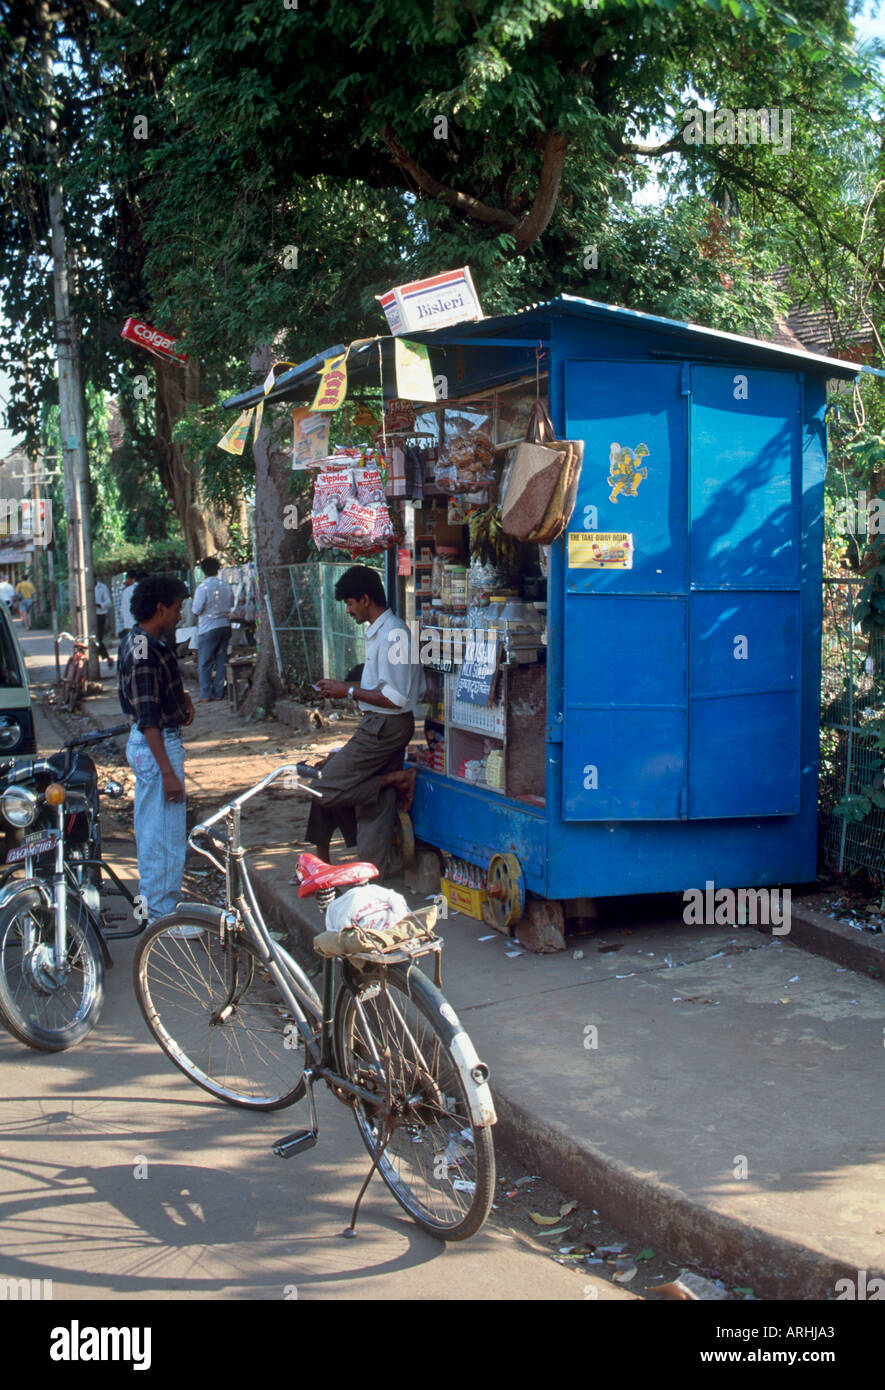 Panjim Or Panaji Stock Photos Images Alamy Full Bike Pato Fx 1 Typical Street Stall In The Capital City Goa India